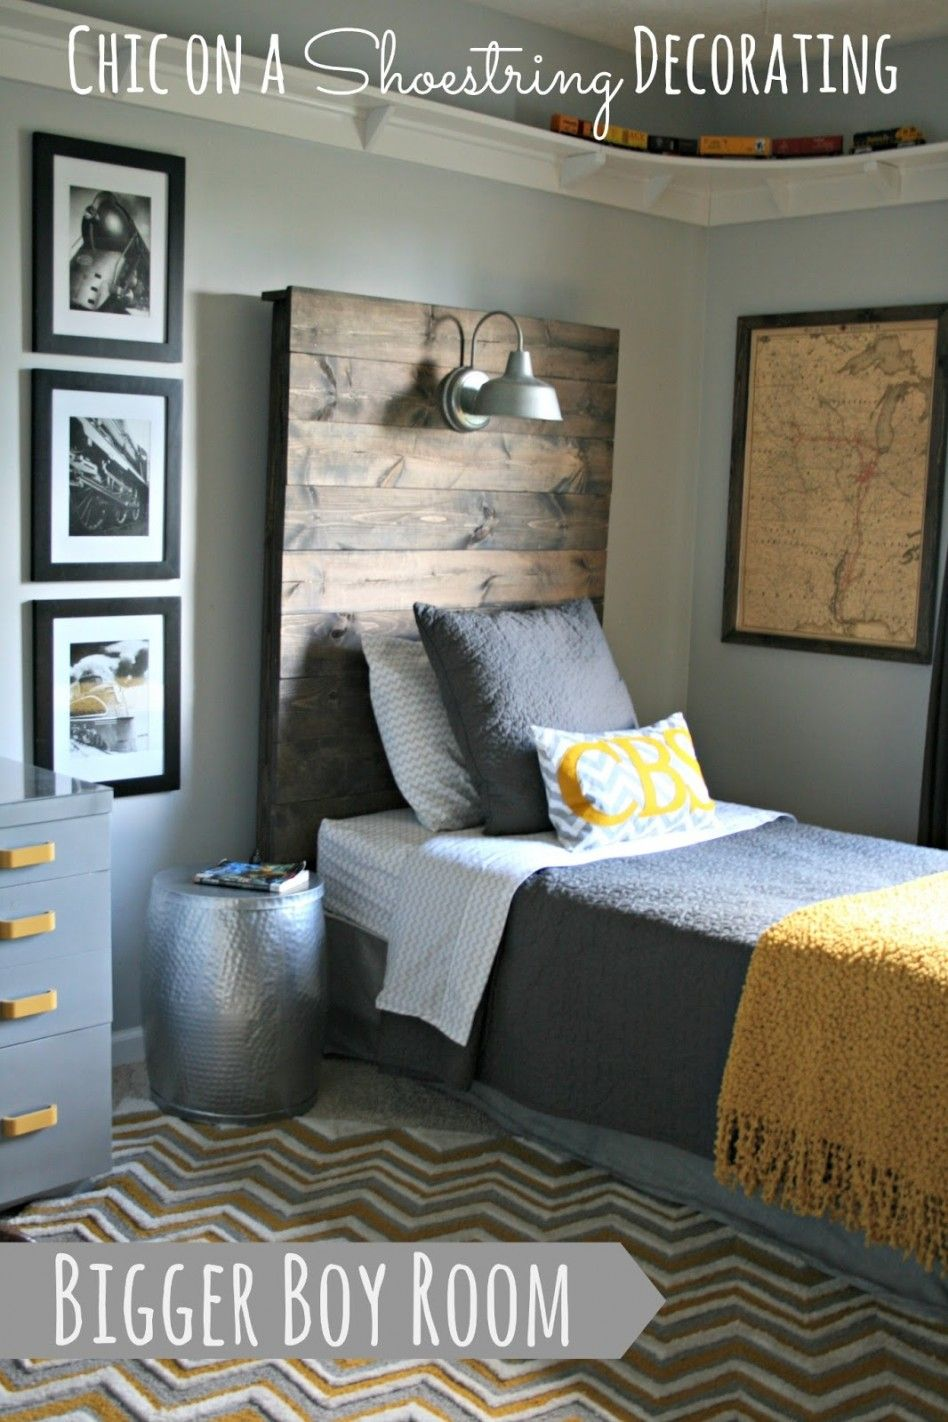 Boys Bedroom Awesome 10 Year Old Boys Bedroom Ideas With Chic Style Decor And Hardwood Plank Headboard With Fancy Moun Big Boy Room Boys Bedrooms Boy S Room